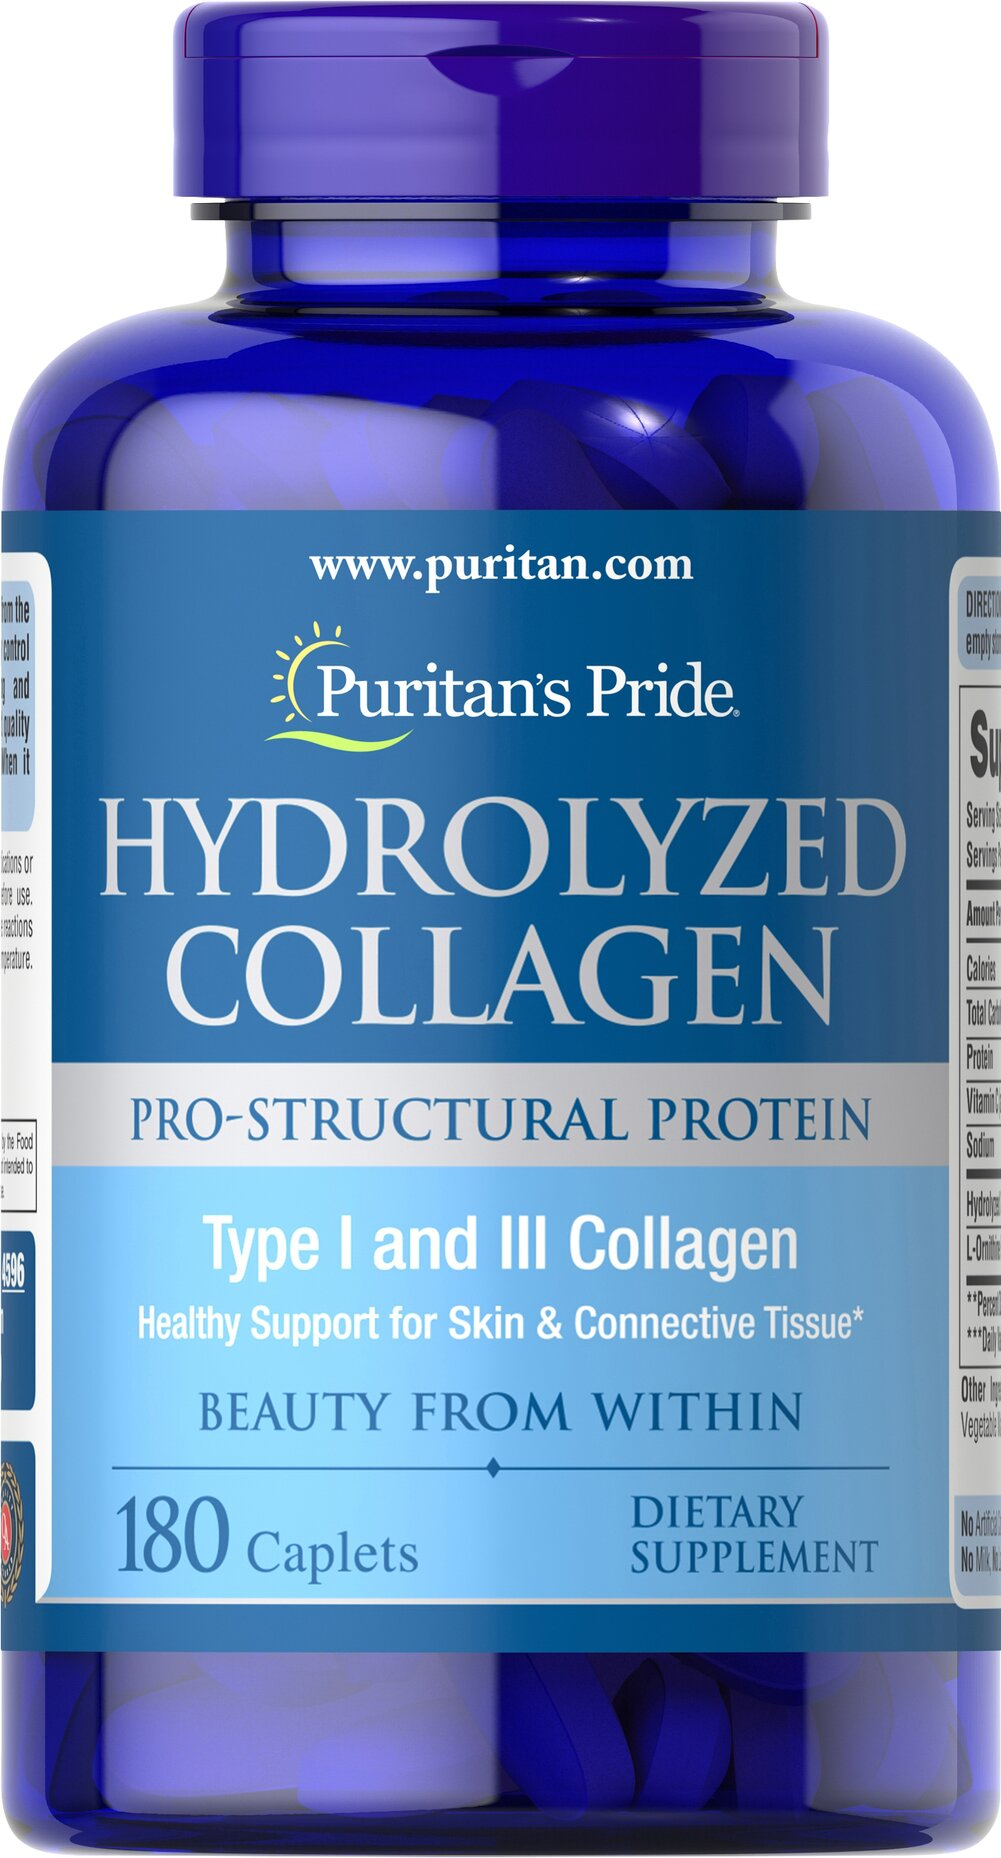 Hydrolyzed Collagen 1000 mg <p>Restore Strength and Flexibility to Hair, Skin and Nails</p><p>This 100% pure collagen protein supplement provides the major building materials for growth and maintenance of nails, hair and skin. Collagen is also an essential component of muscles, tendons, cartilage and teeth.**</p> 180 Caplets 1000 mg $21.99